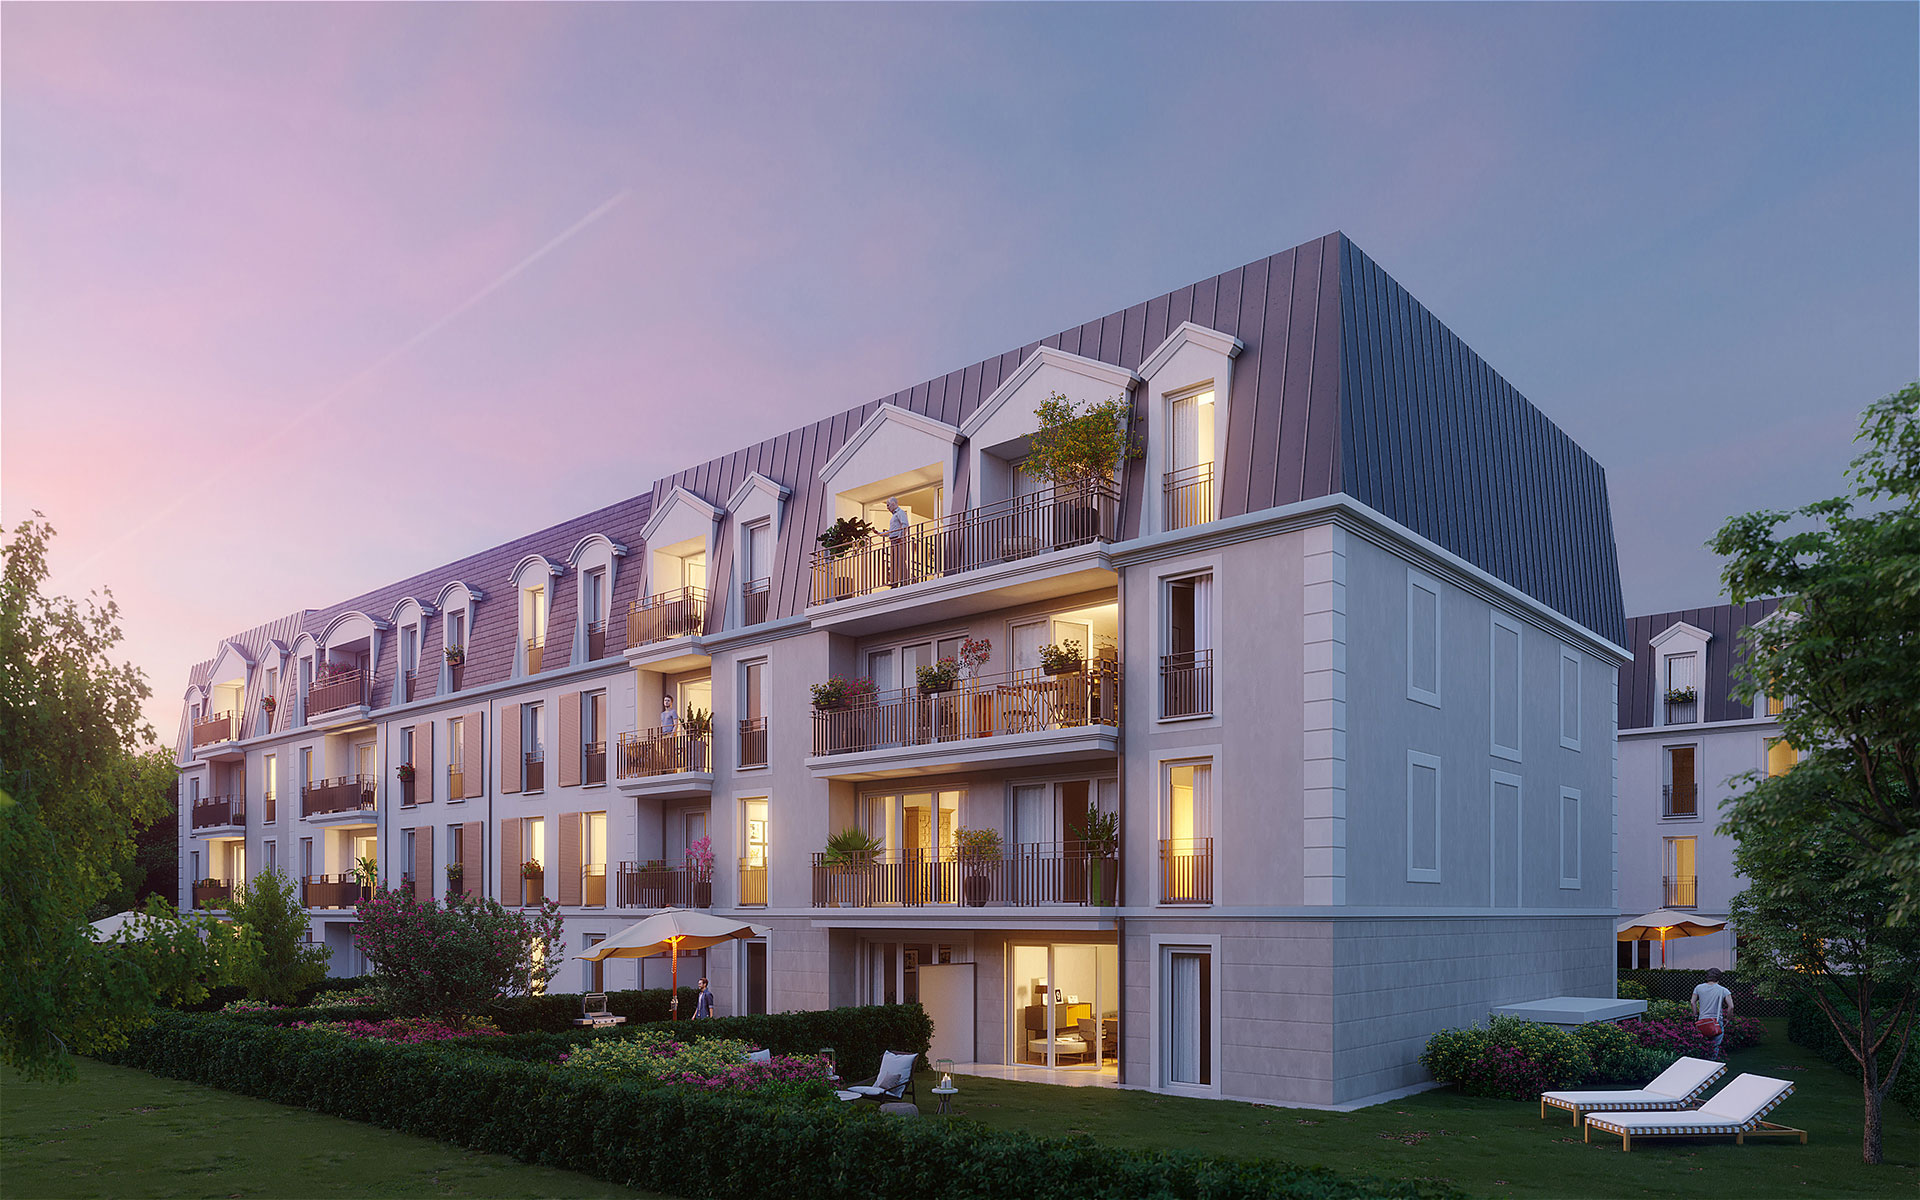 3D exterior Render of a new building in a sunset mood for its promotion